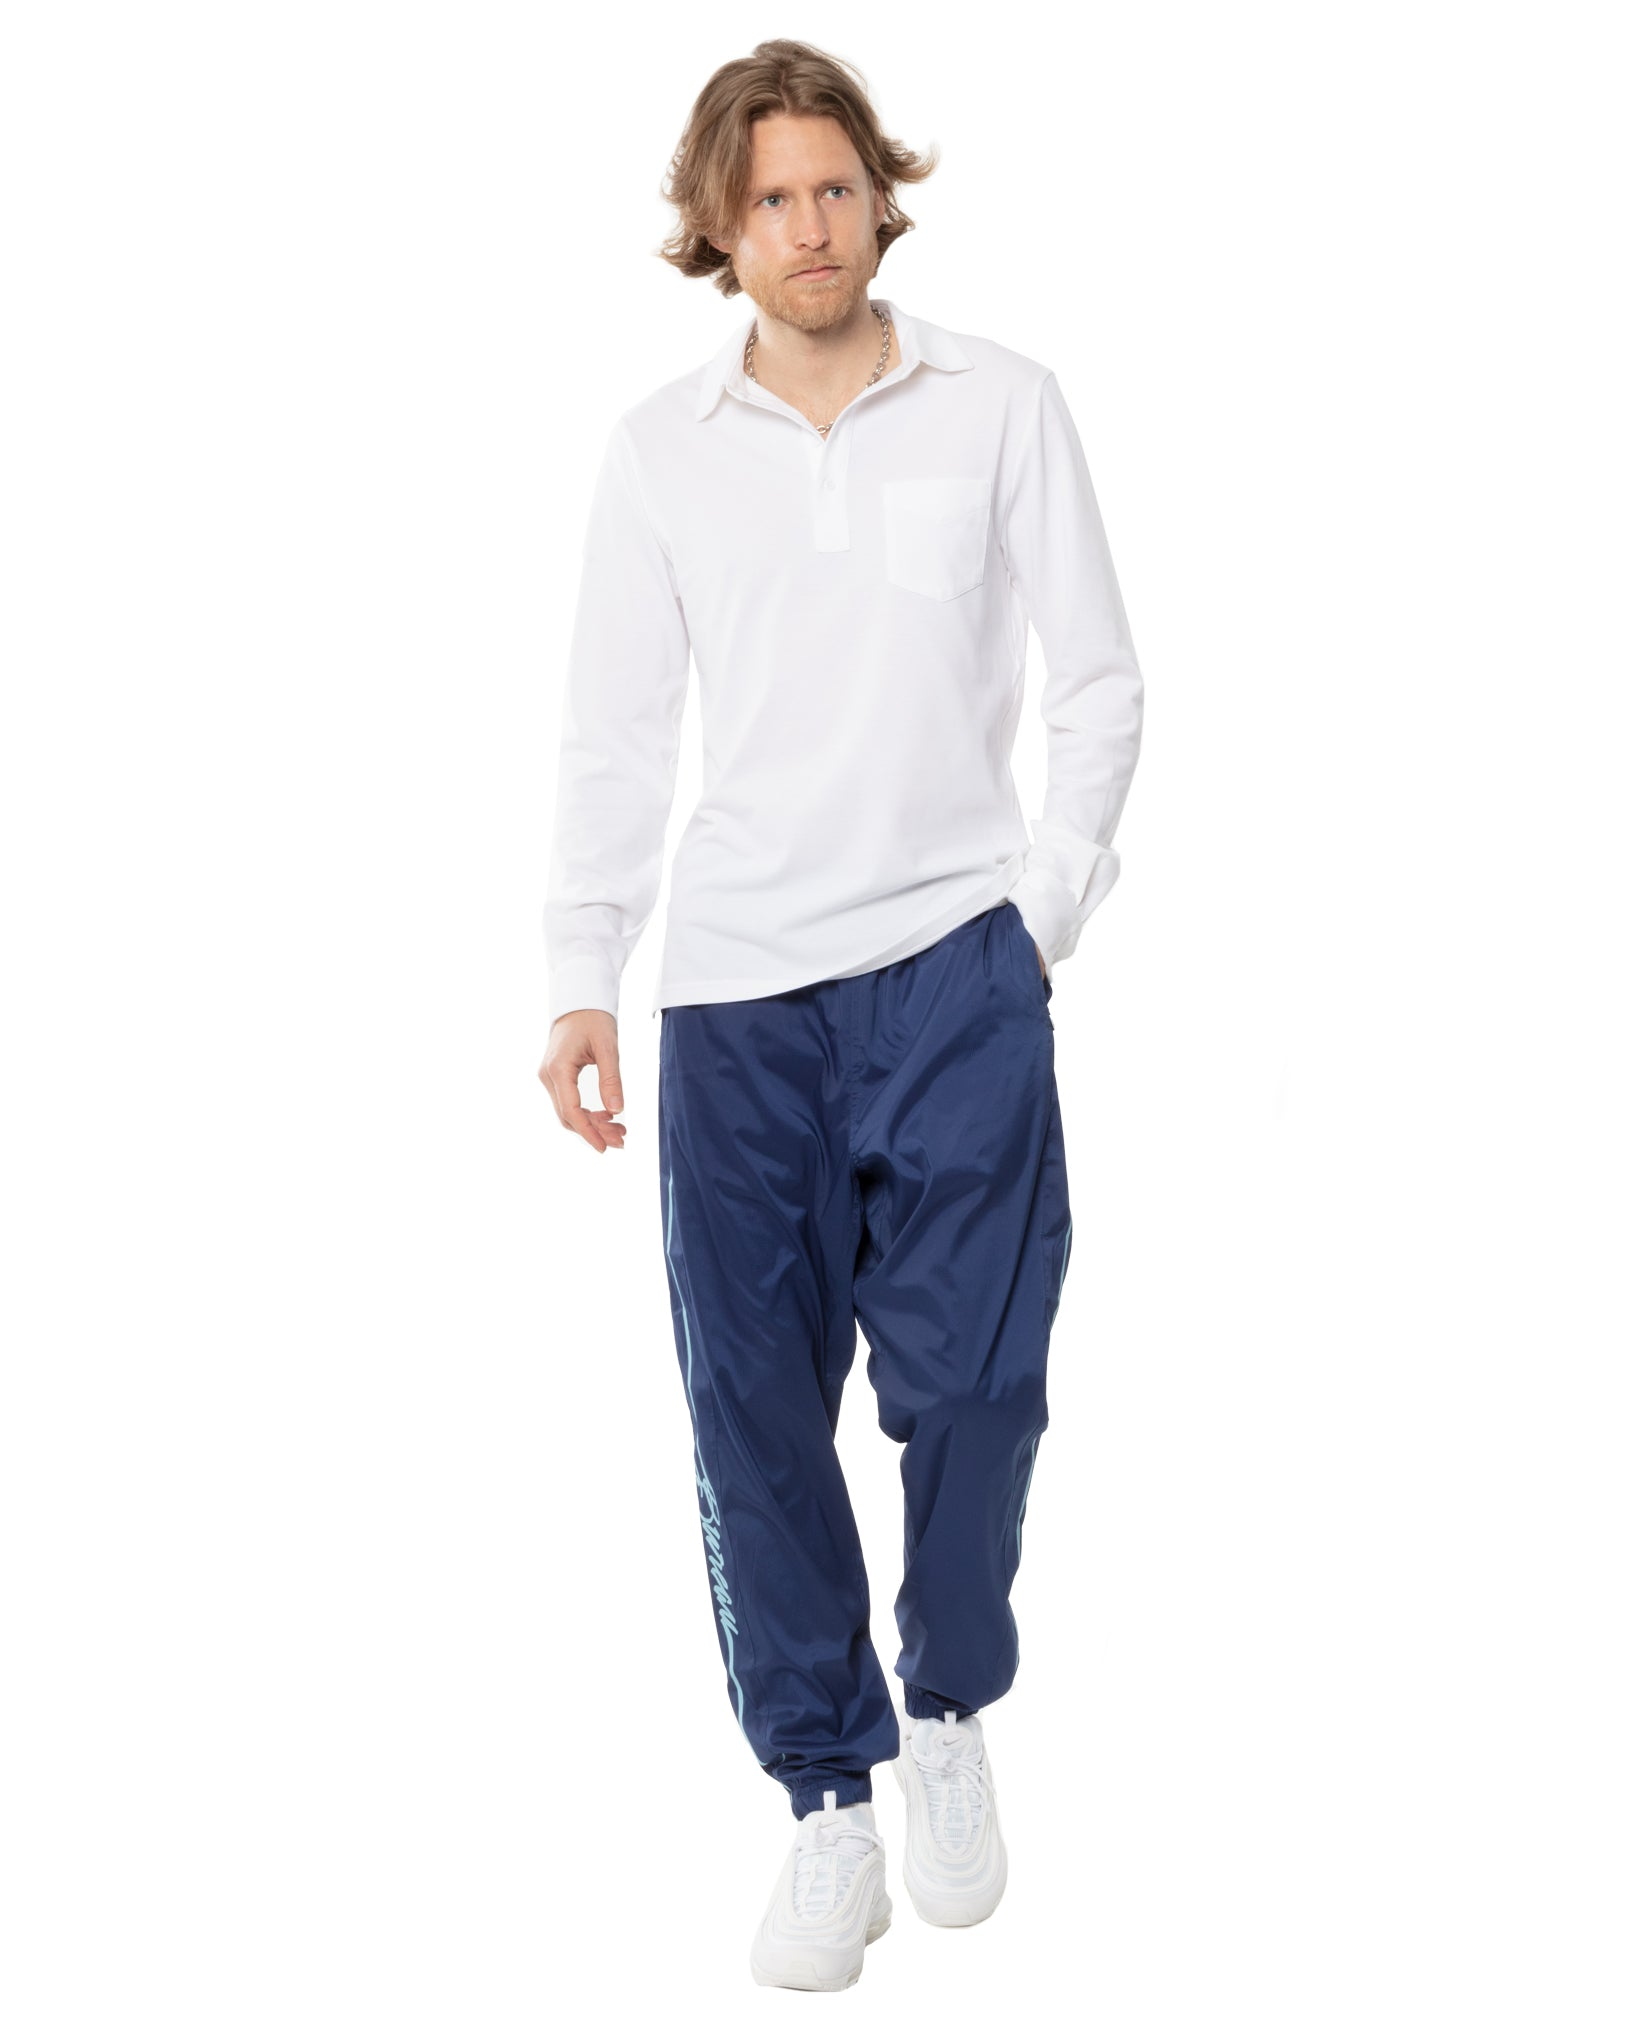 Men's Navy Blue Windbreaker track pants